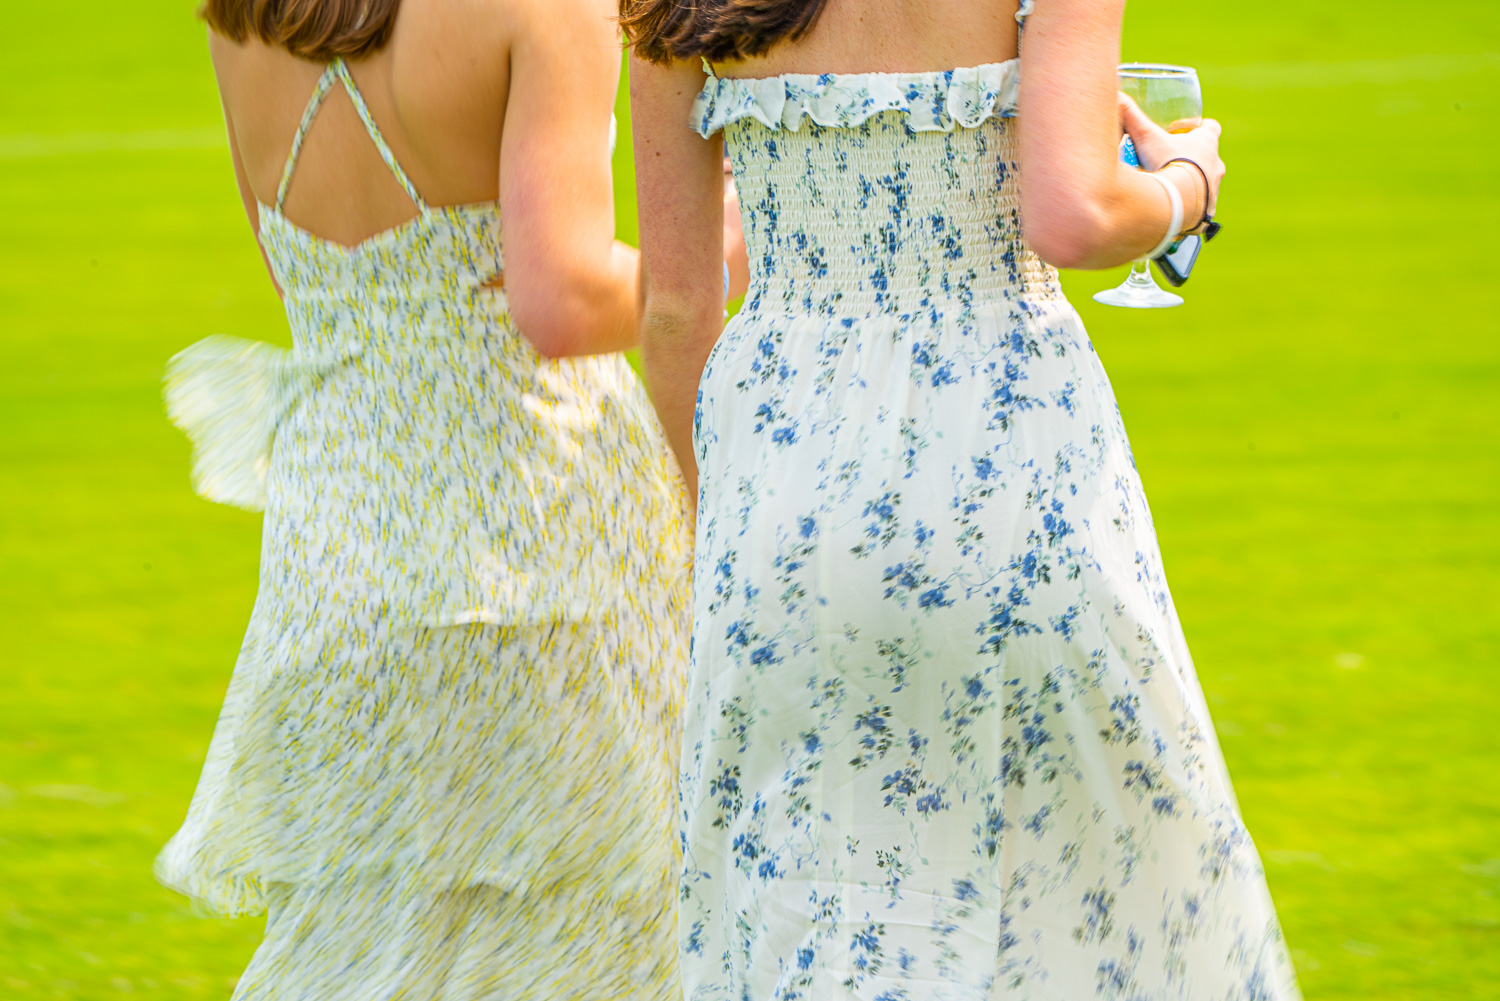 Two women dress for the occasion. Polo anyone at the Mashomack Polo Club, pine plans, ny.  The action blur creats a sense of speed and movement..jpg